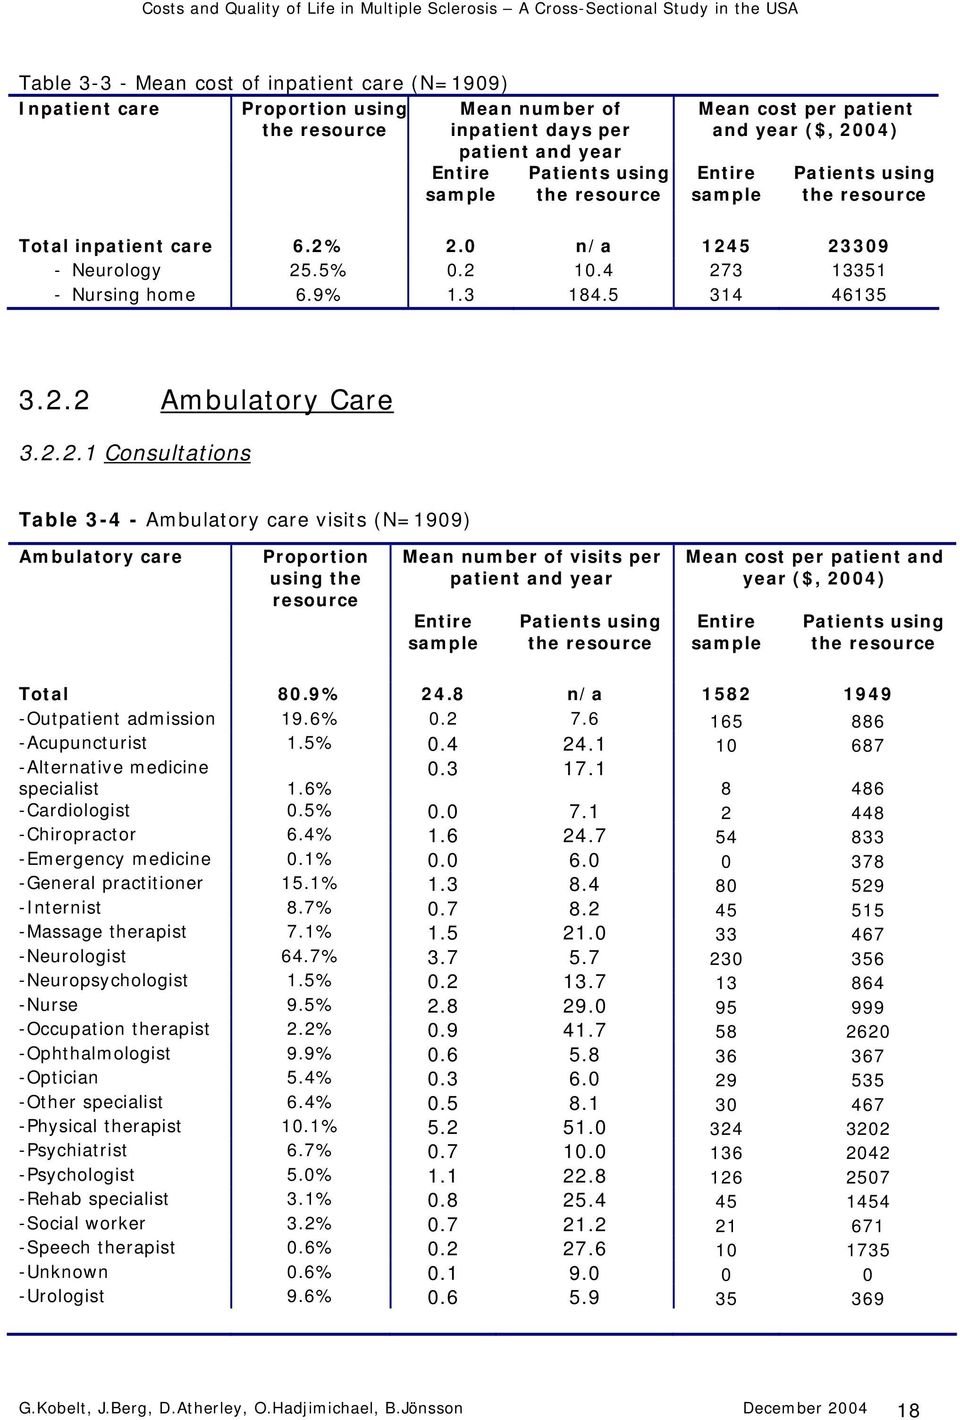 2.2.1 Consultations Table 3-4 - Ambulatory care visits (N=1909) Ambulatory care Proportion using the resource Mean number of visits per patient and year Entire sample Patients using the resource Mean